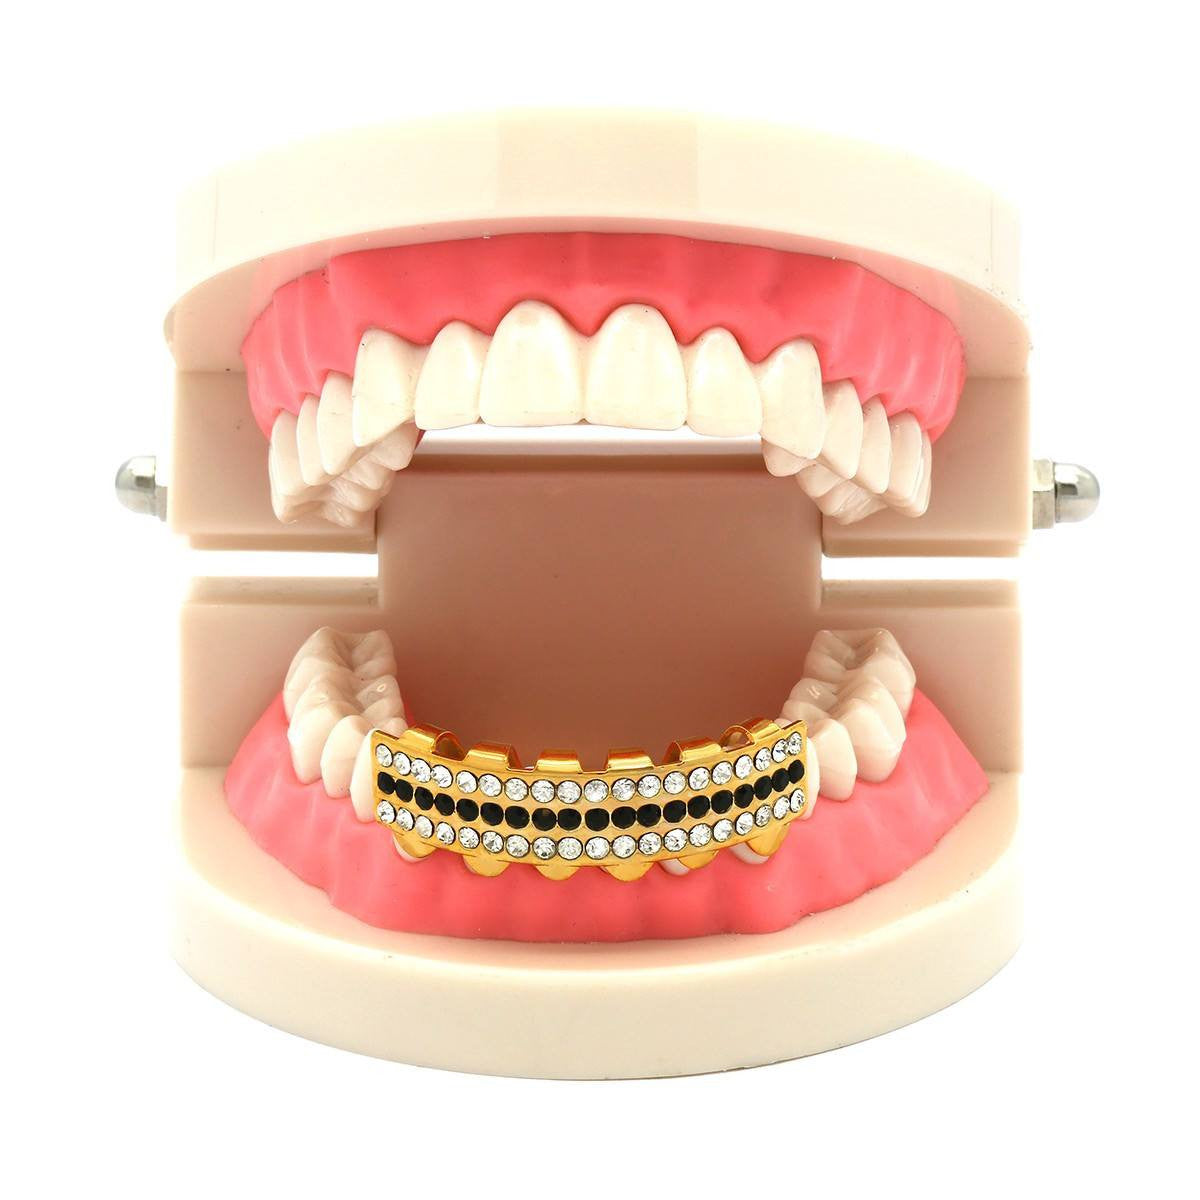 GOLD BOTTOM GRILLZ 3 ROW CLEAR/BLK